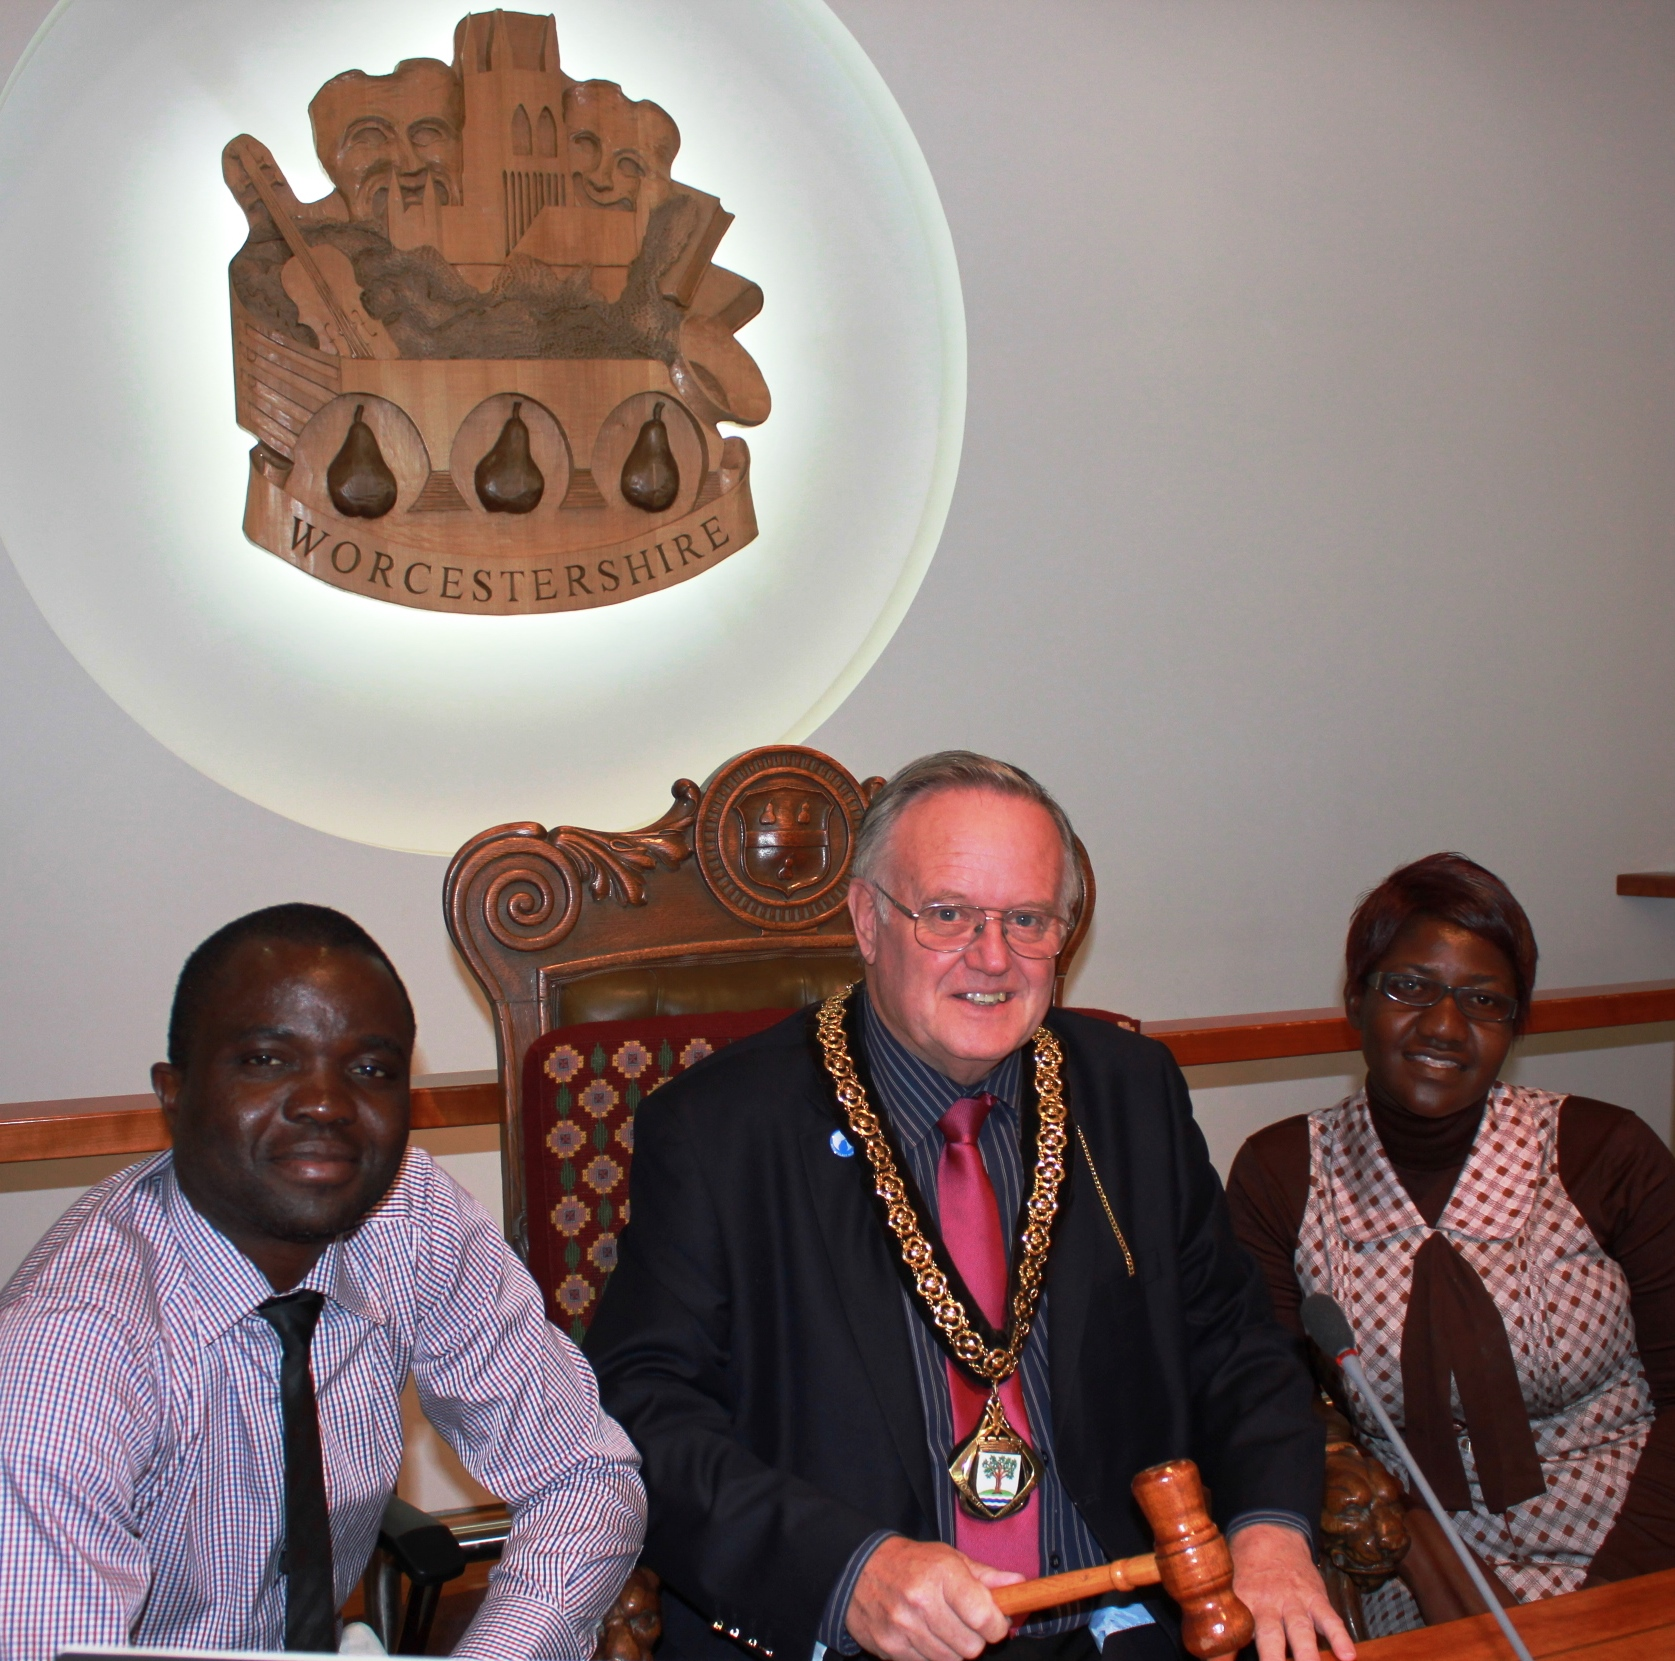 Two teachers from Zambia learned all about the inner workings of local government from Worcestershire County Council Chairman Ian Hopwood while on an exchange visit to Pershore High School.